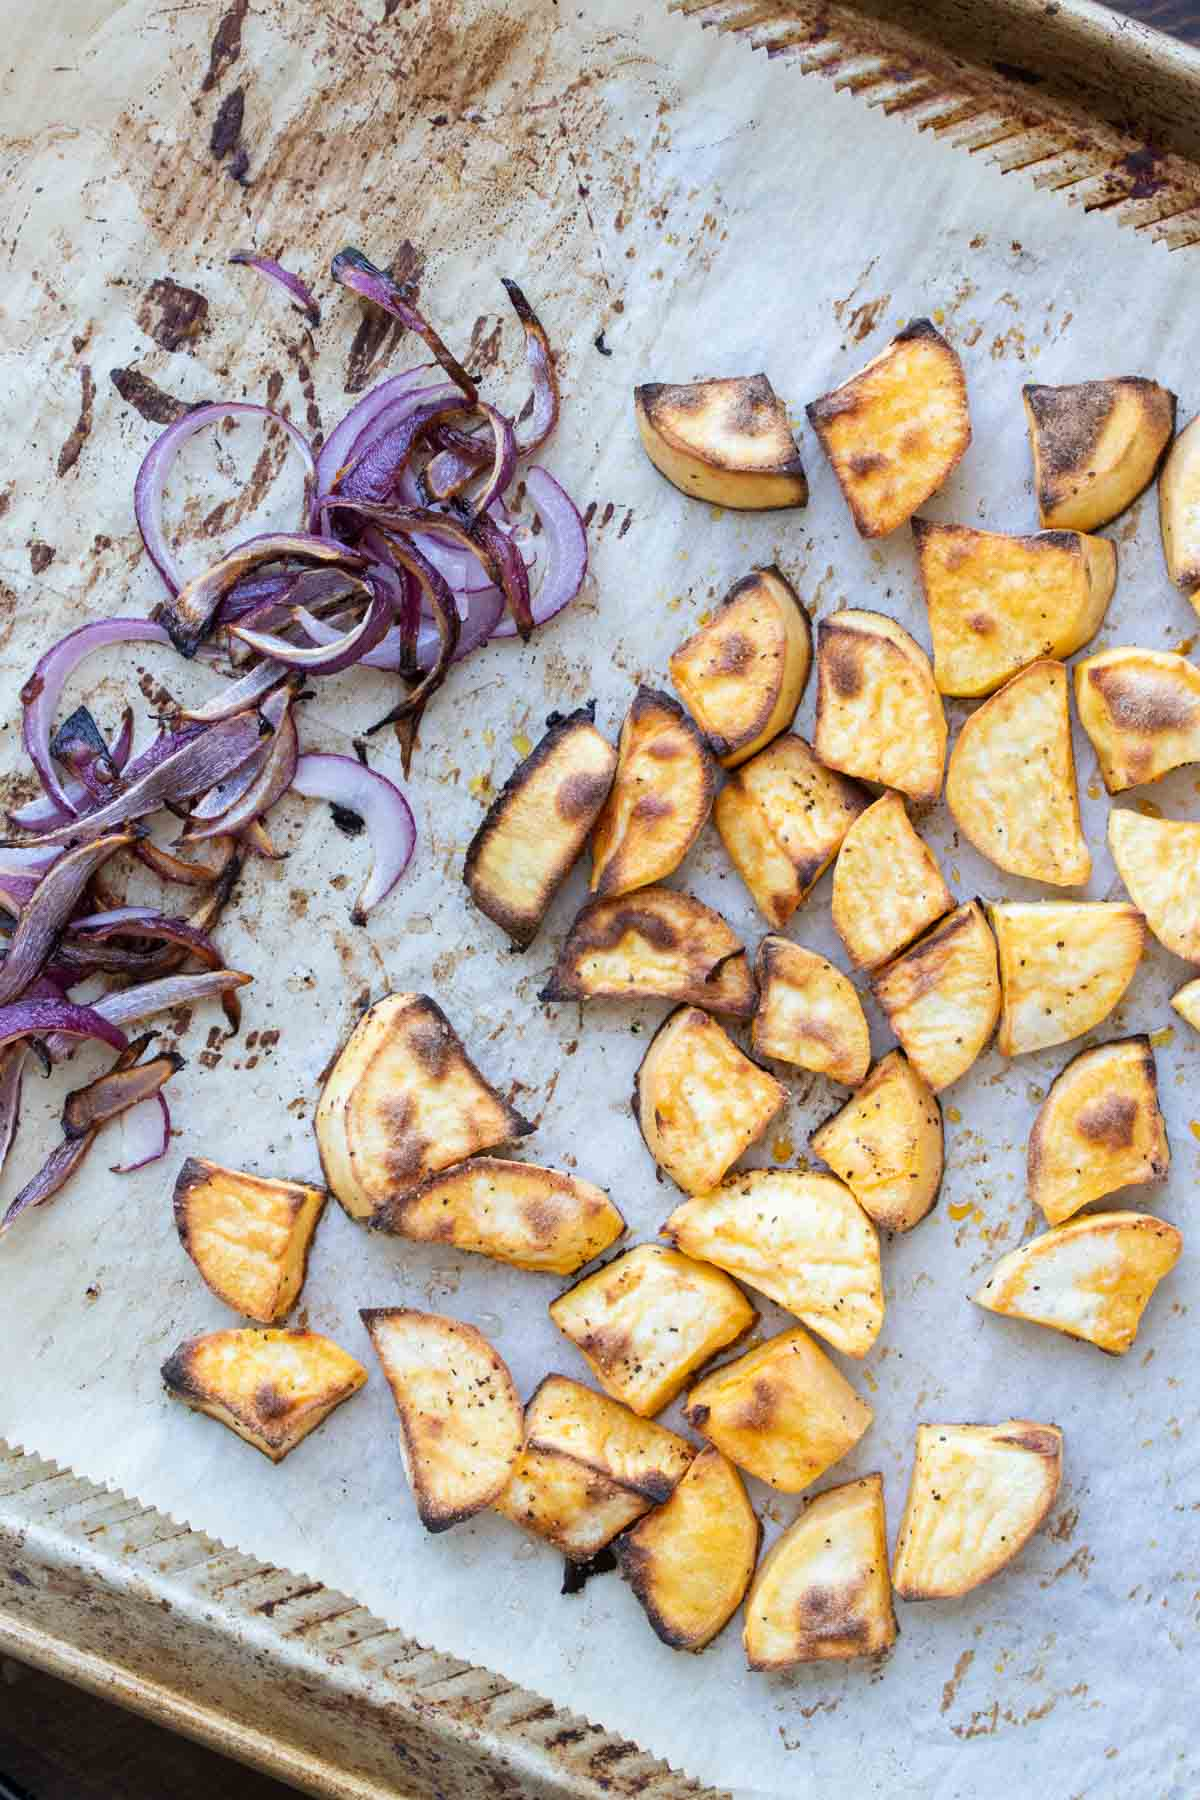 Roasted sweet potato and red onion on a piece of parchment paper